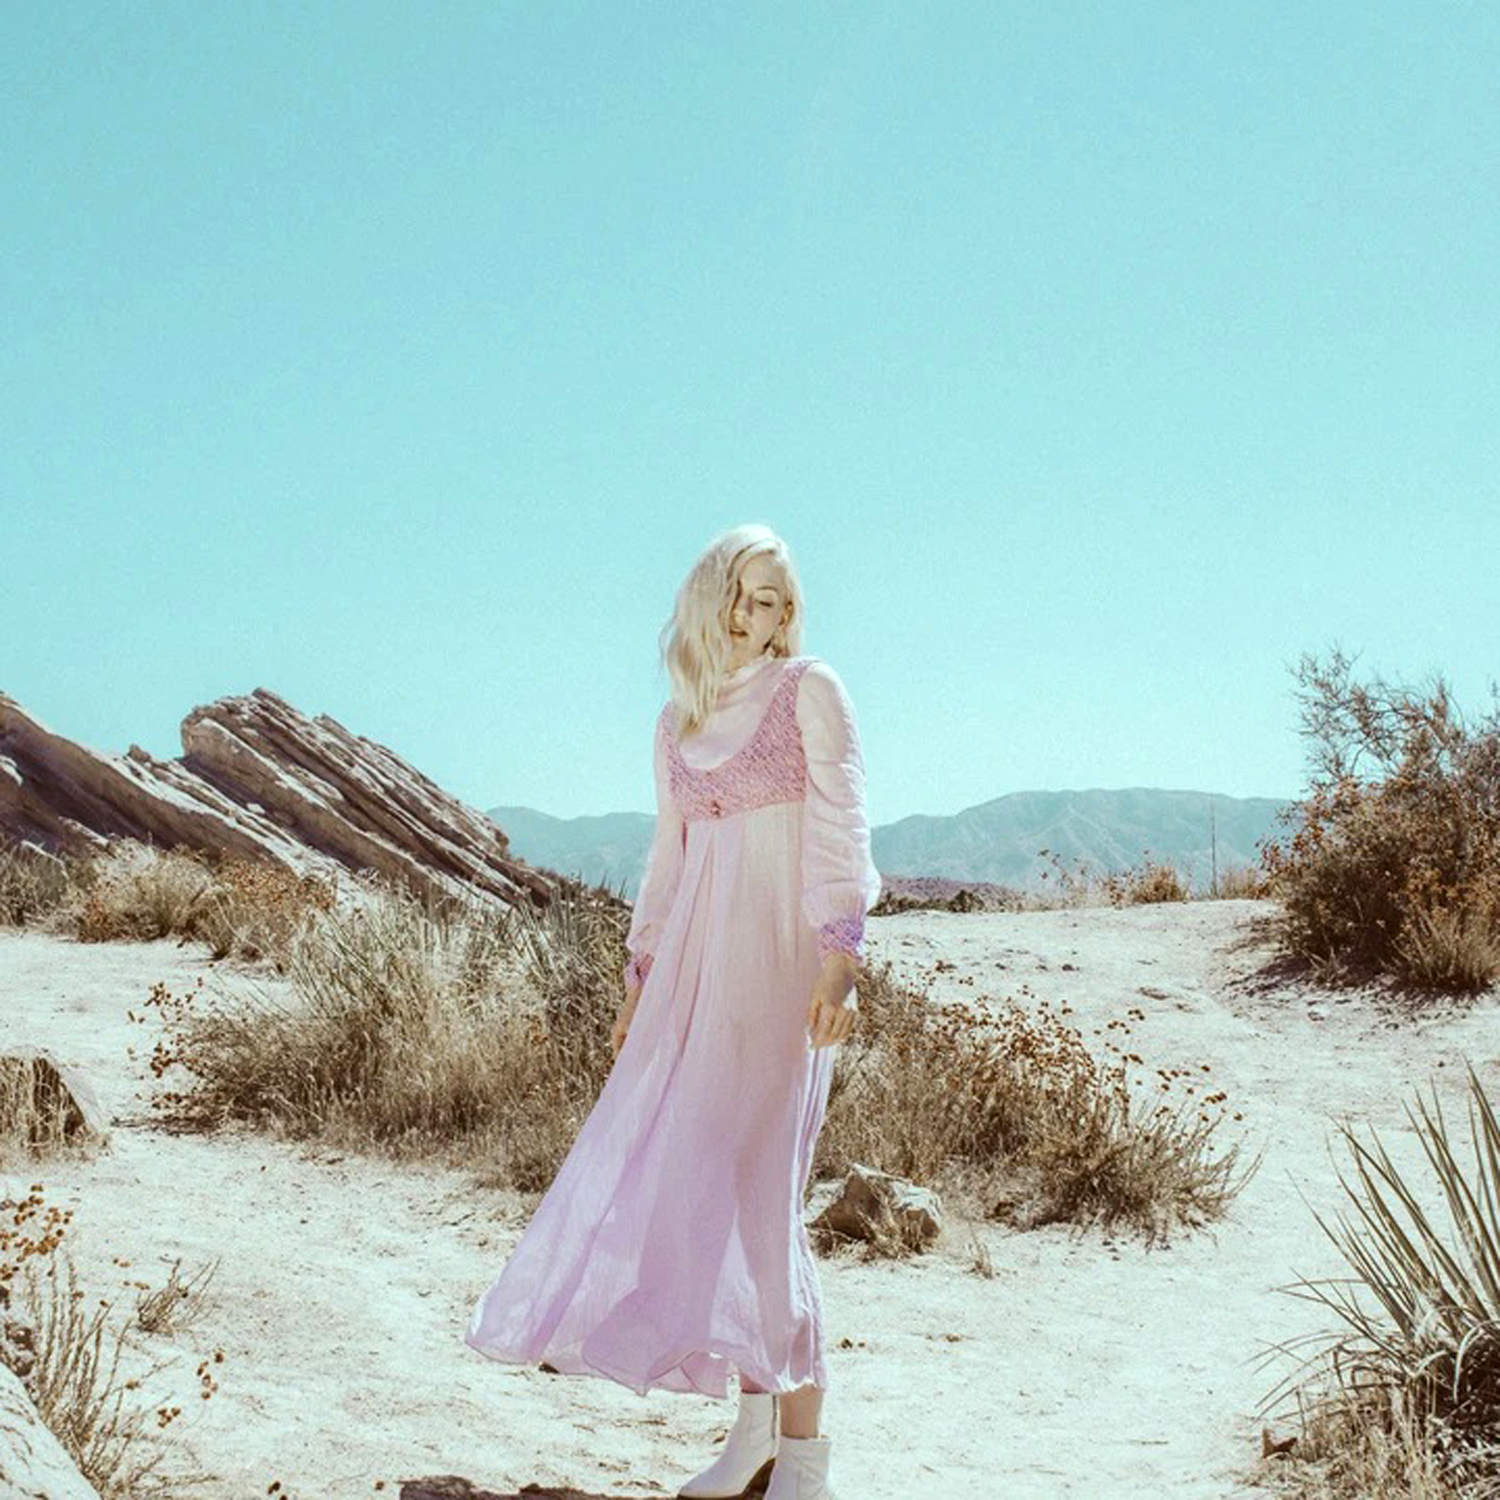 Emily Kinney cover art for new album The Supporting Character